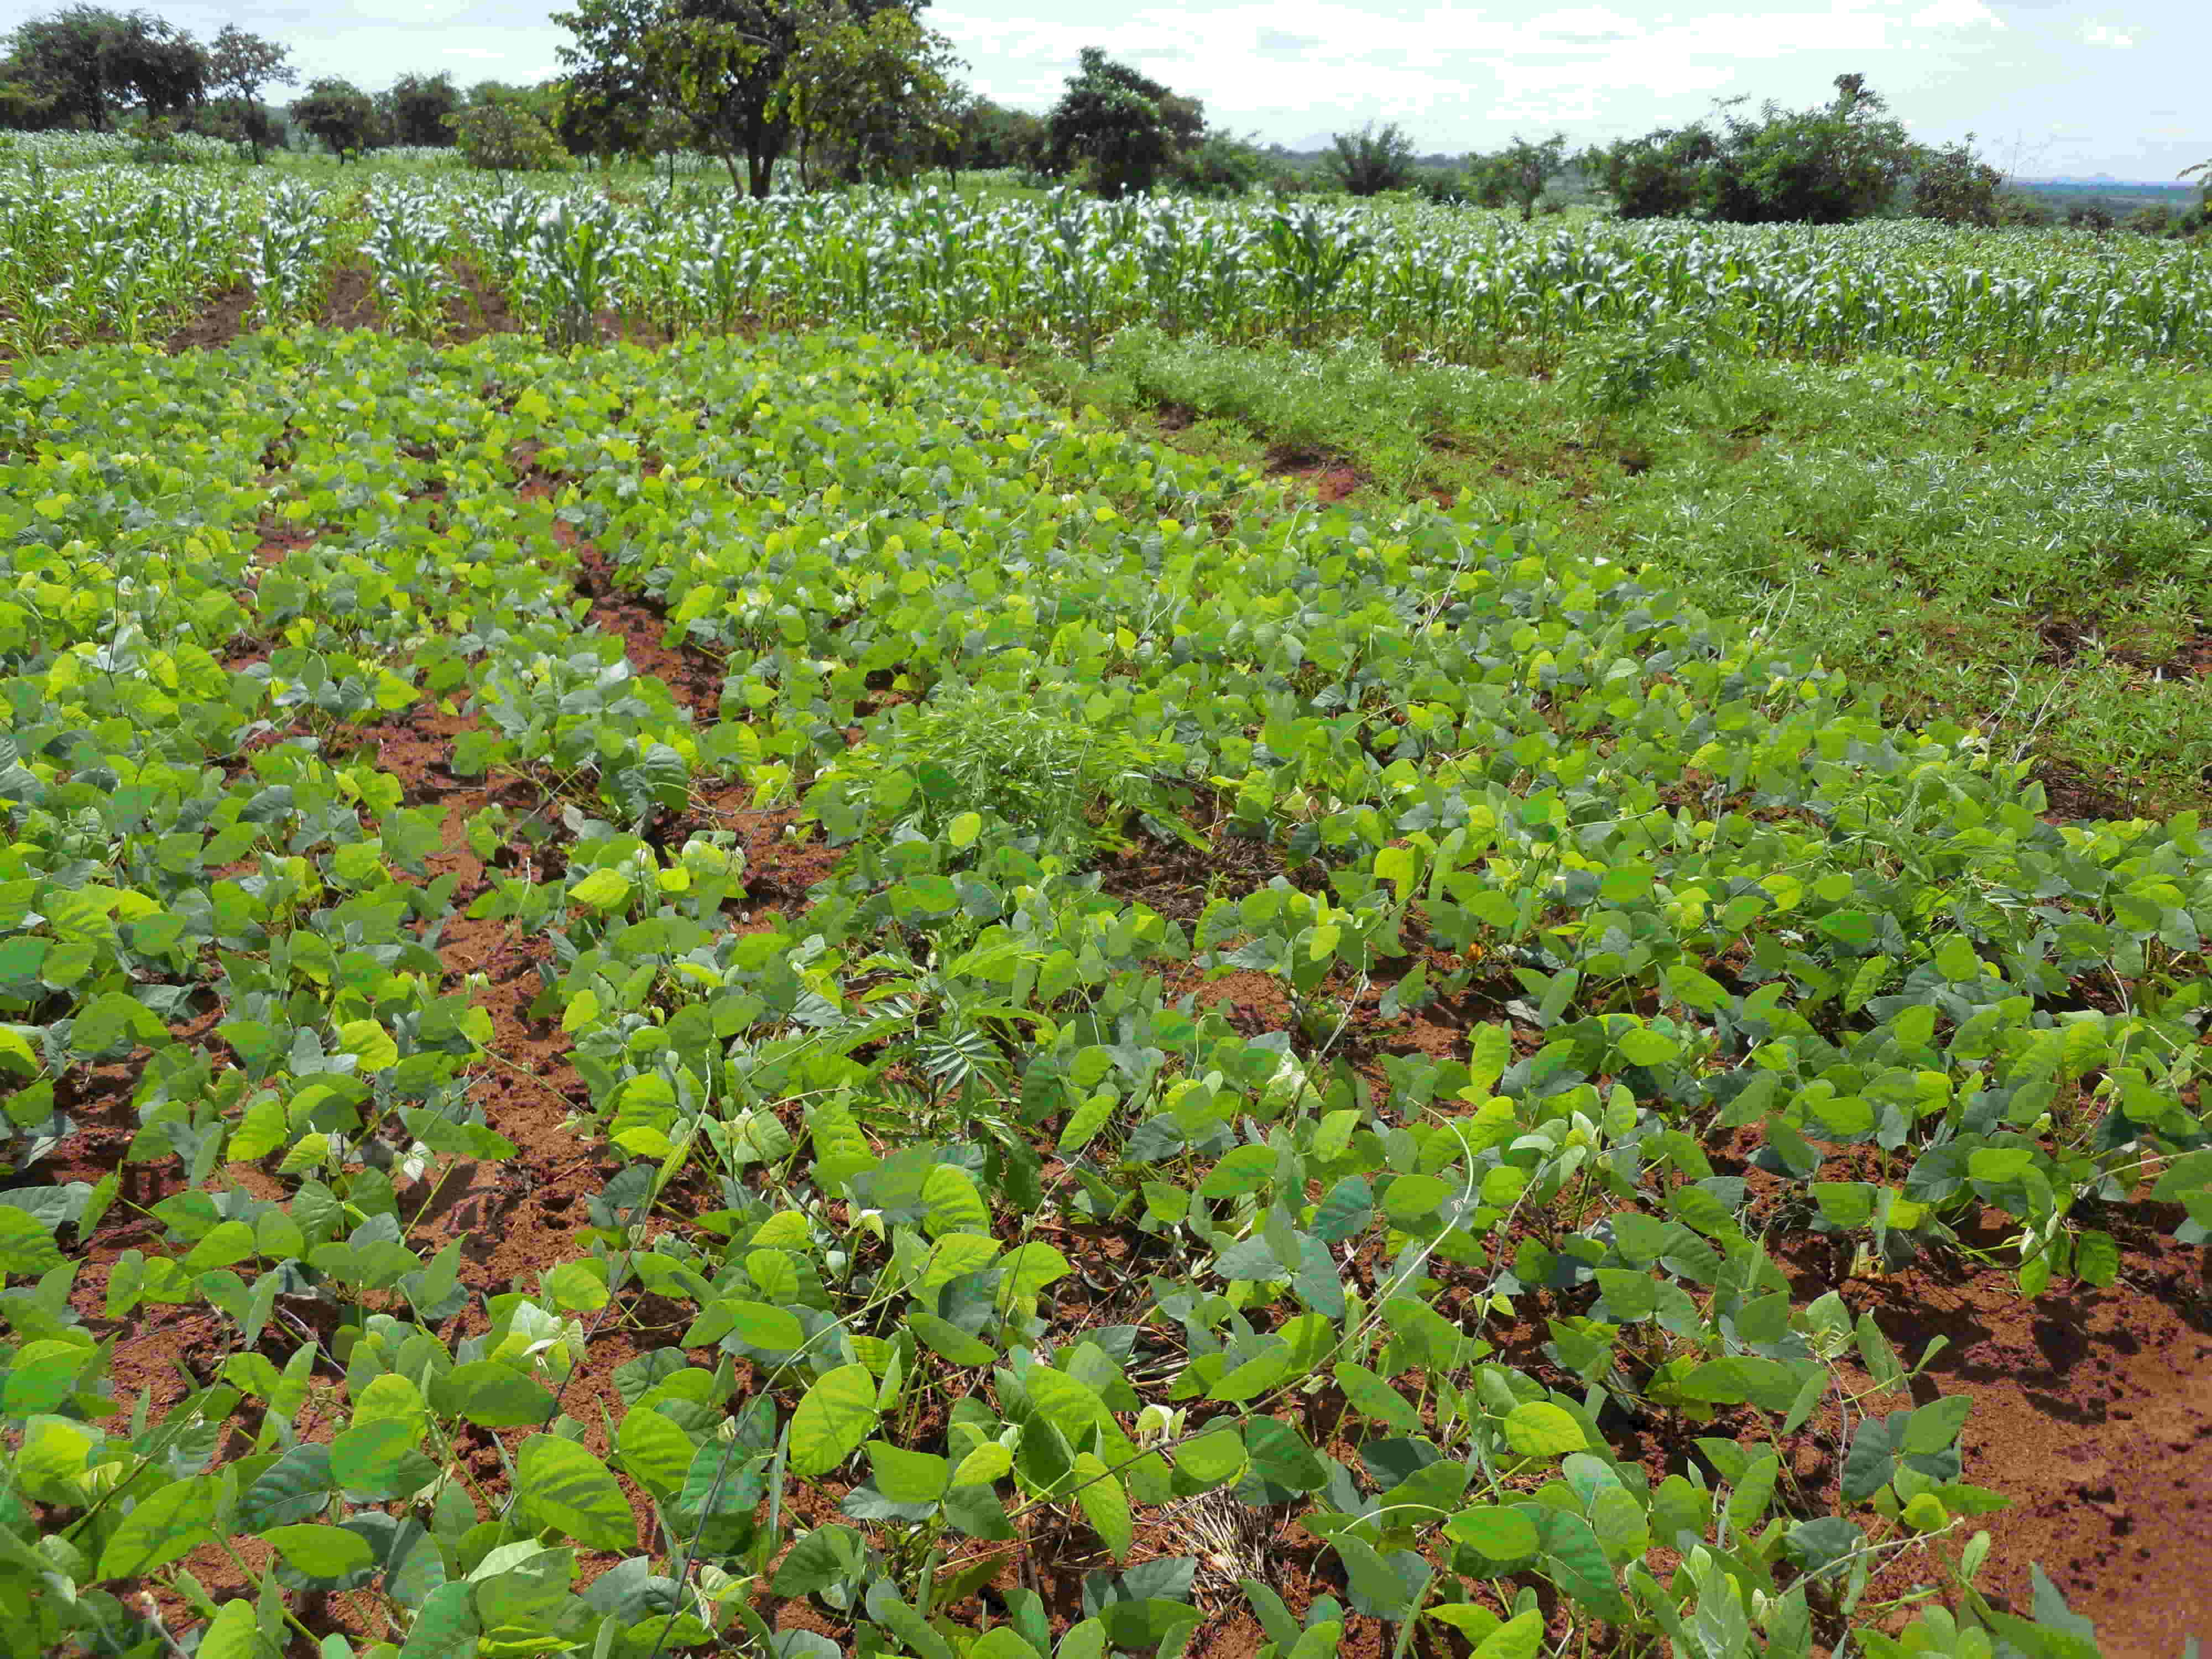 Velvet bean planted in rotation with maize increases soil fertility, provides biomass for feed and suppresses weeds in Chipata, Zambia. Photo: Christian Thierfelder/CIMMYT.